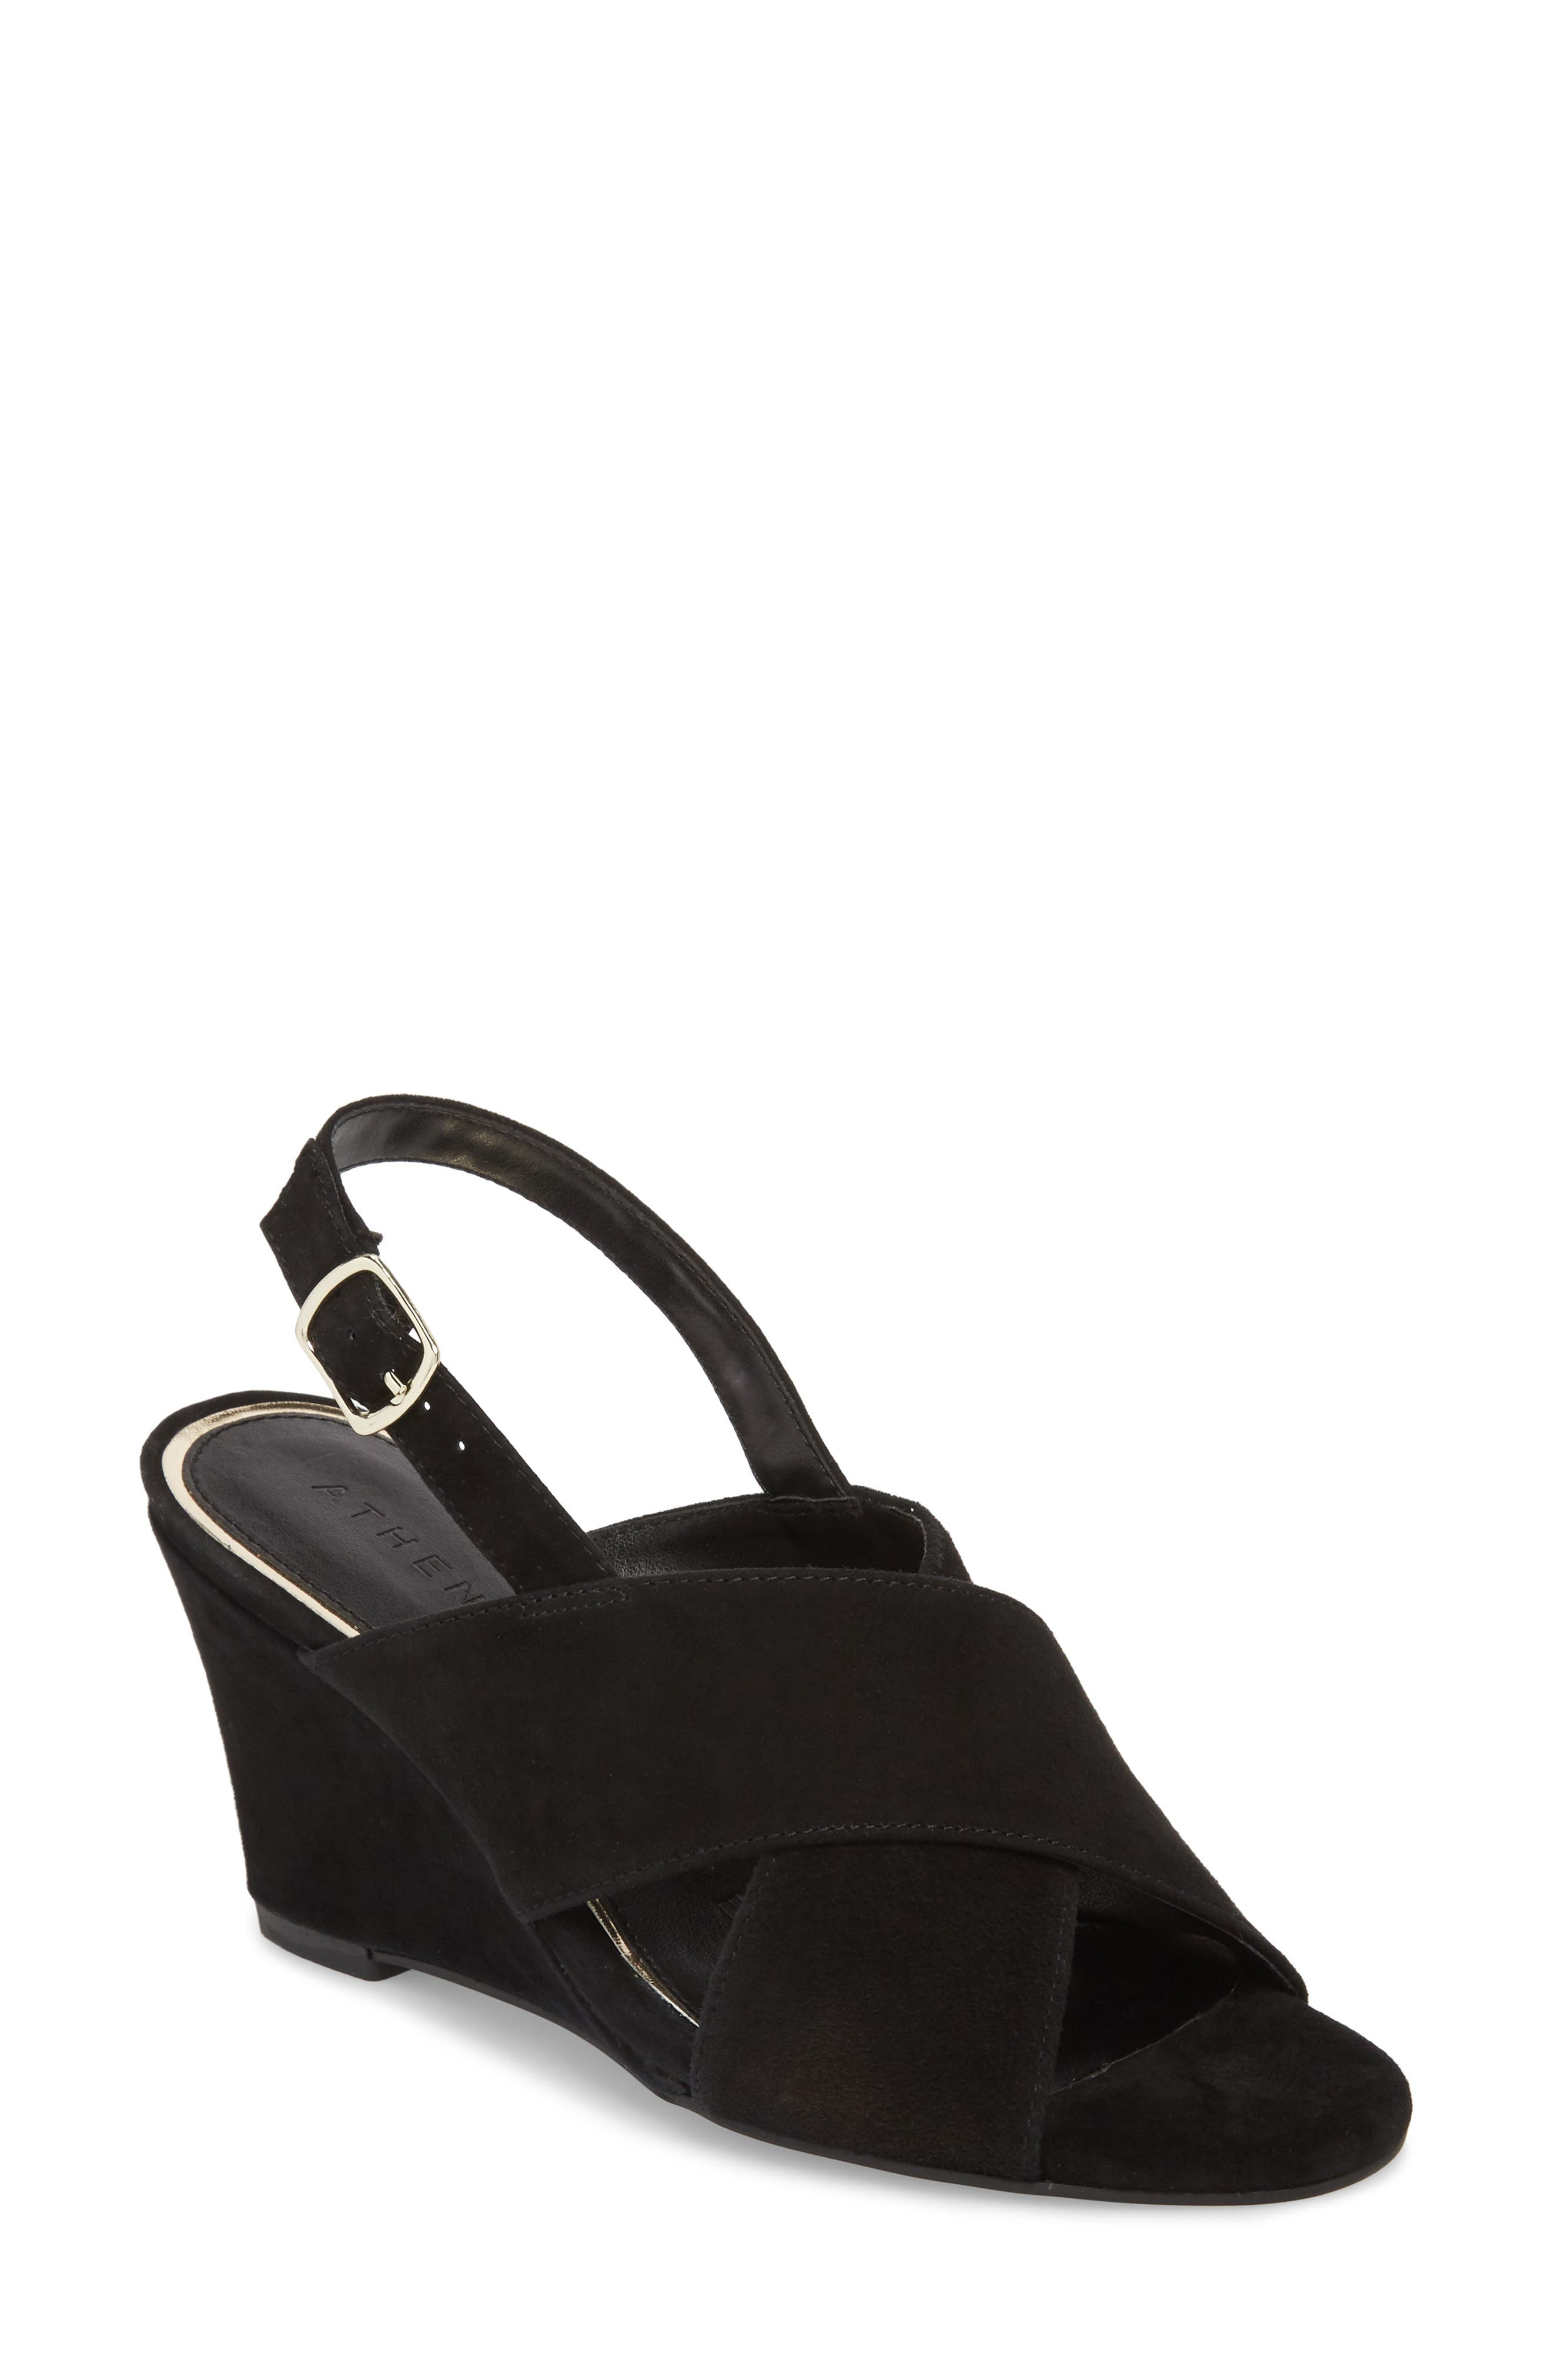 Eastford Wedge Sandal,                             Main thumbnail 1, color,                             BLACK SUEDE